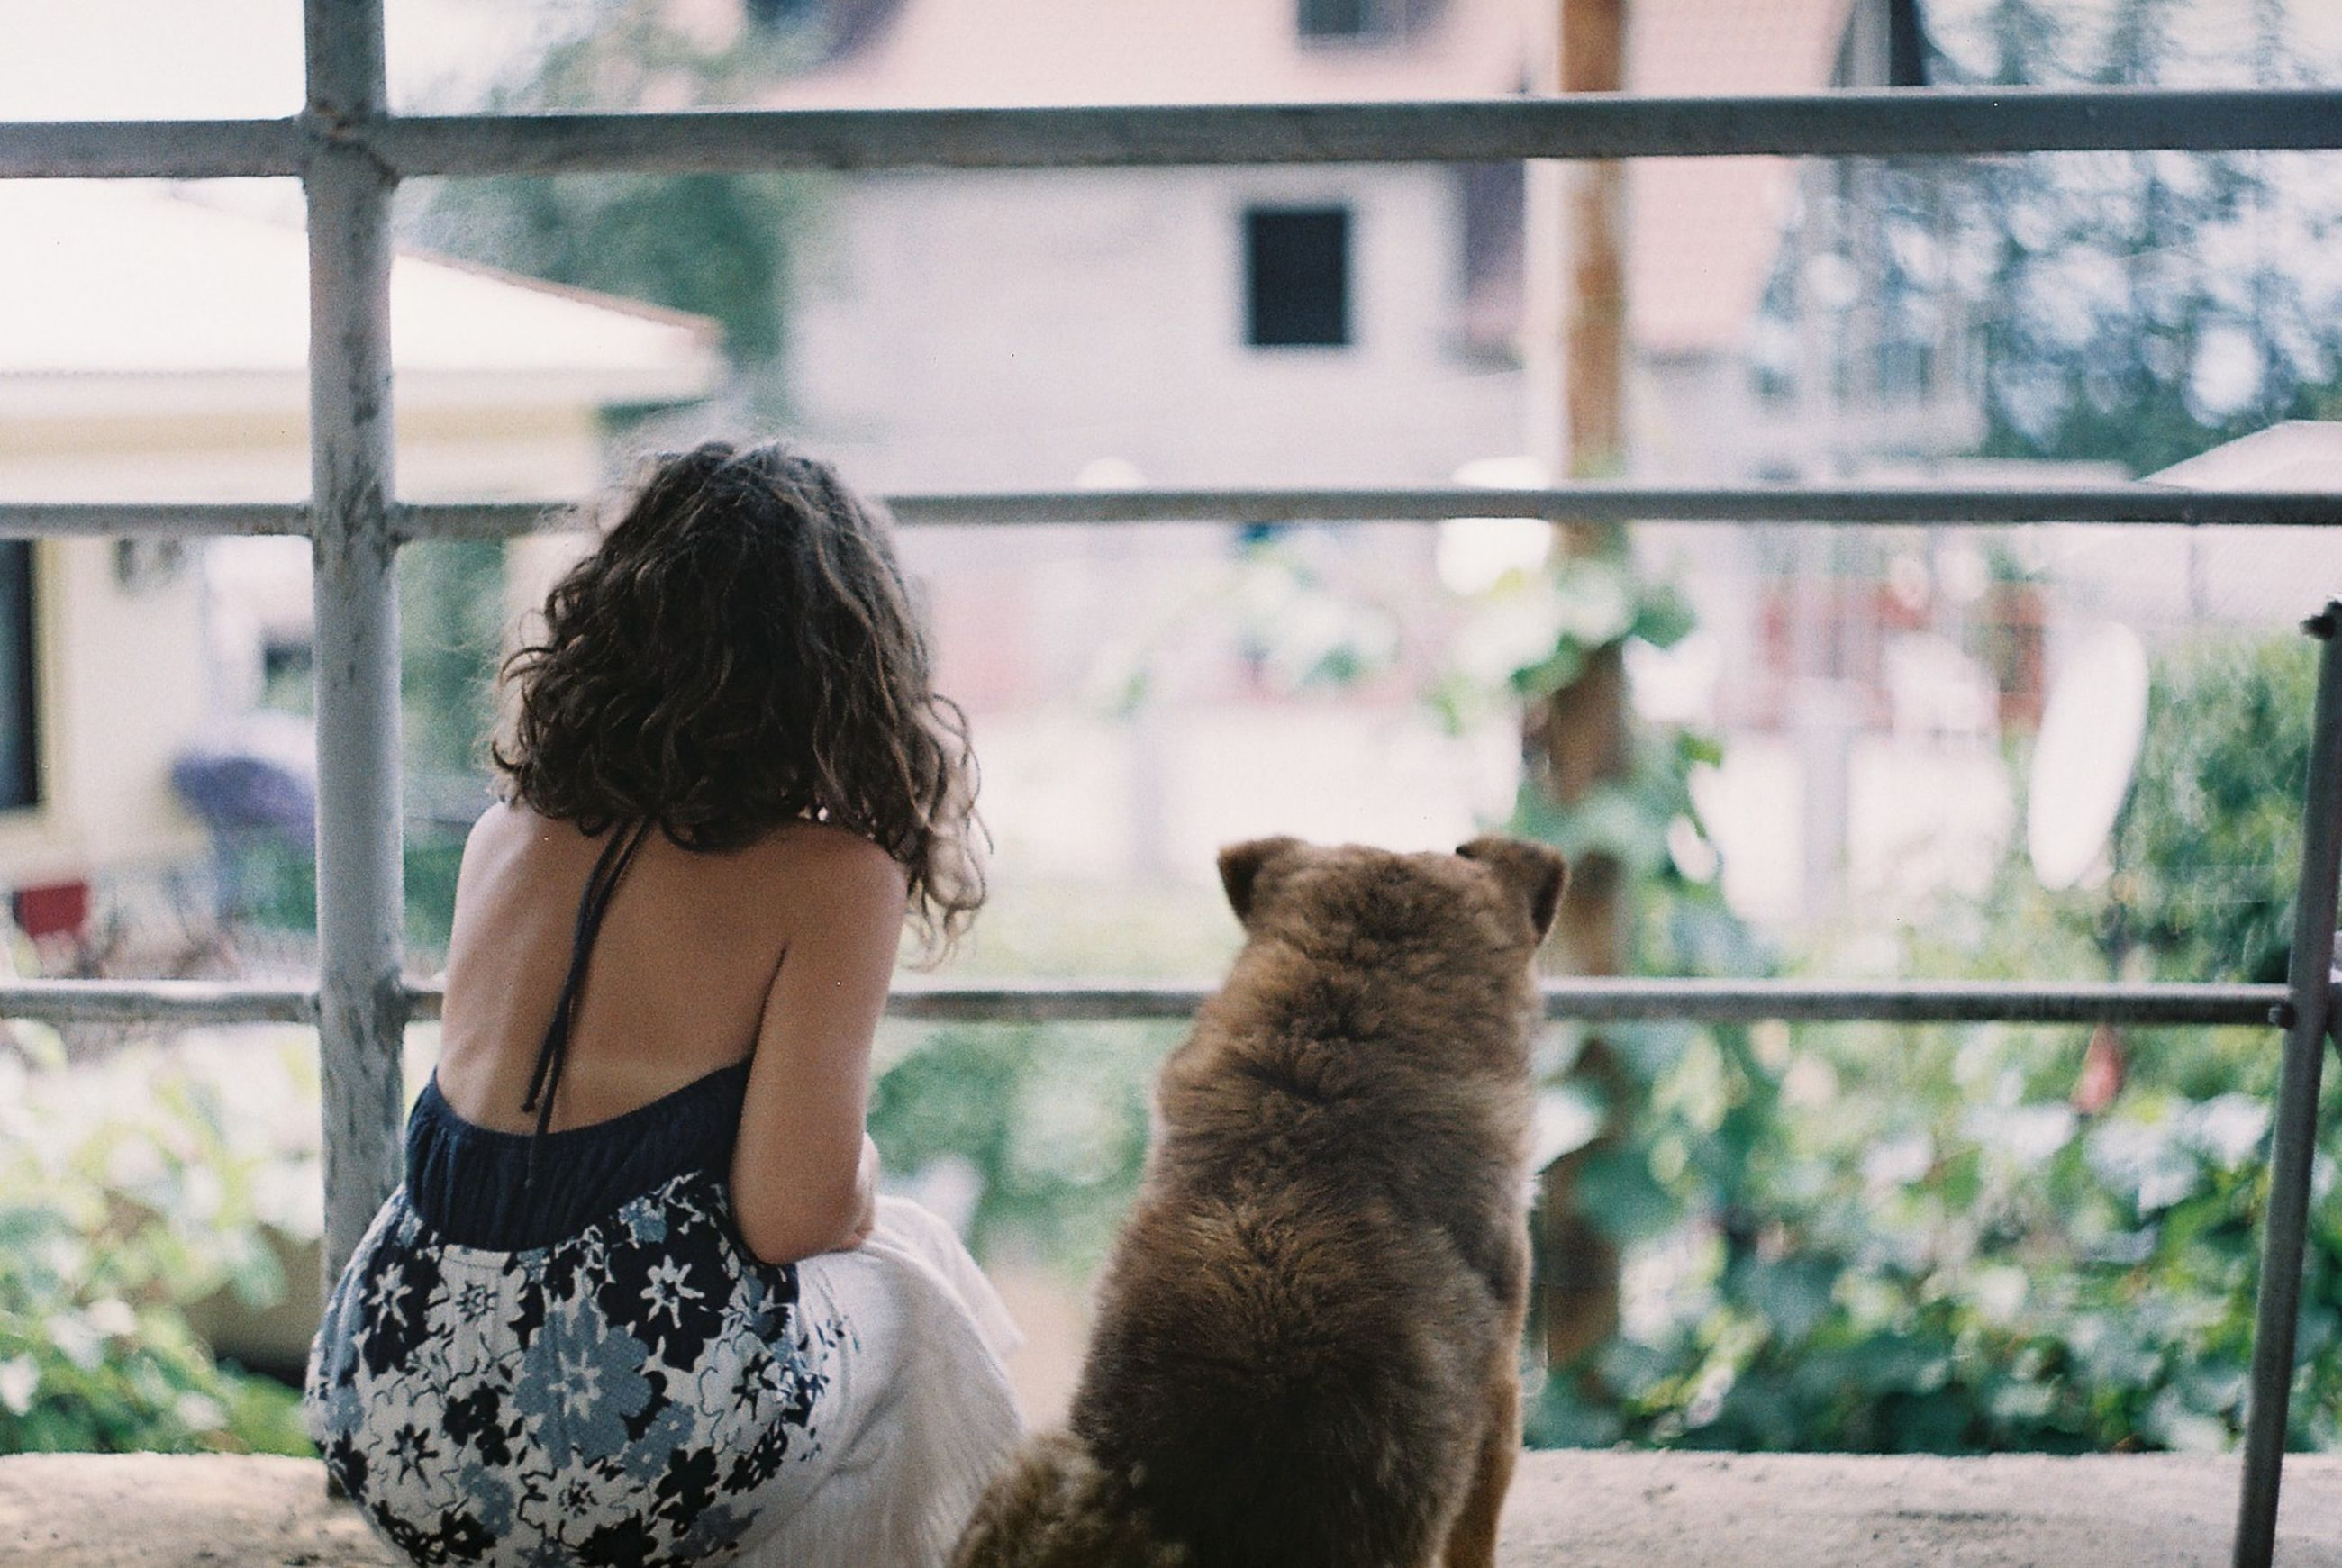 mammal, rear view, one person, domestic, pets, domestic animals, one animal, vertebrate, women, real people, leisure activity, lifestyles, window, day, built structure, cat, architecture, hair, outdoors, hairstyle